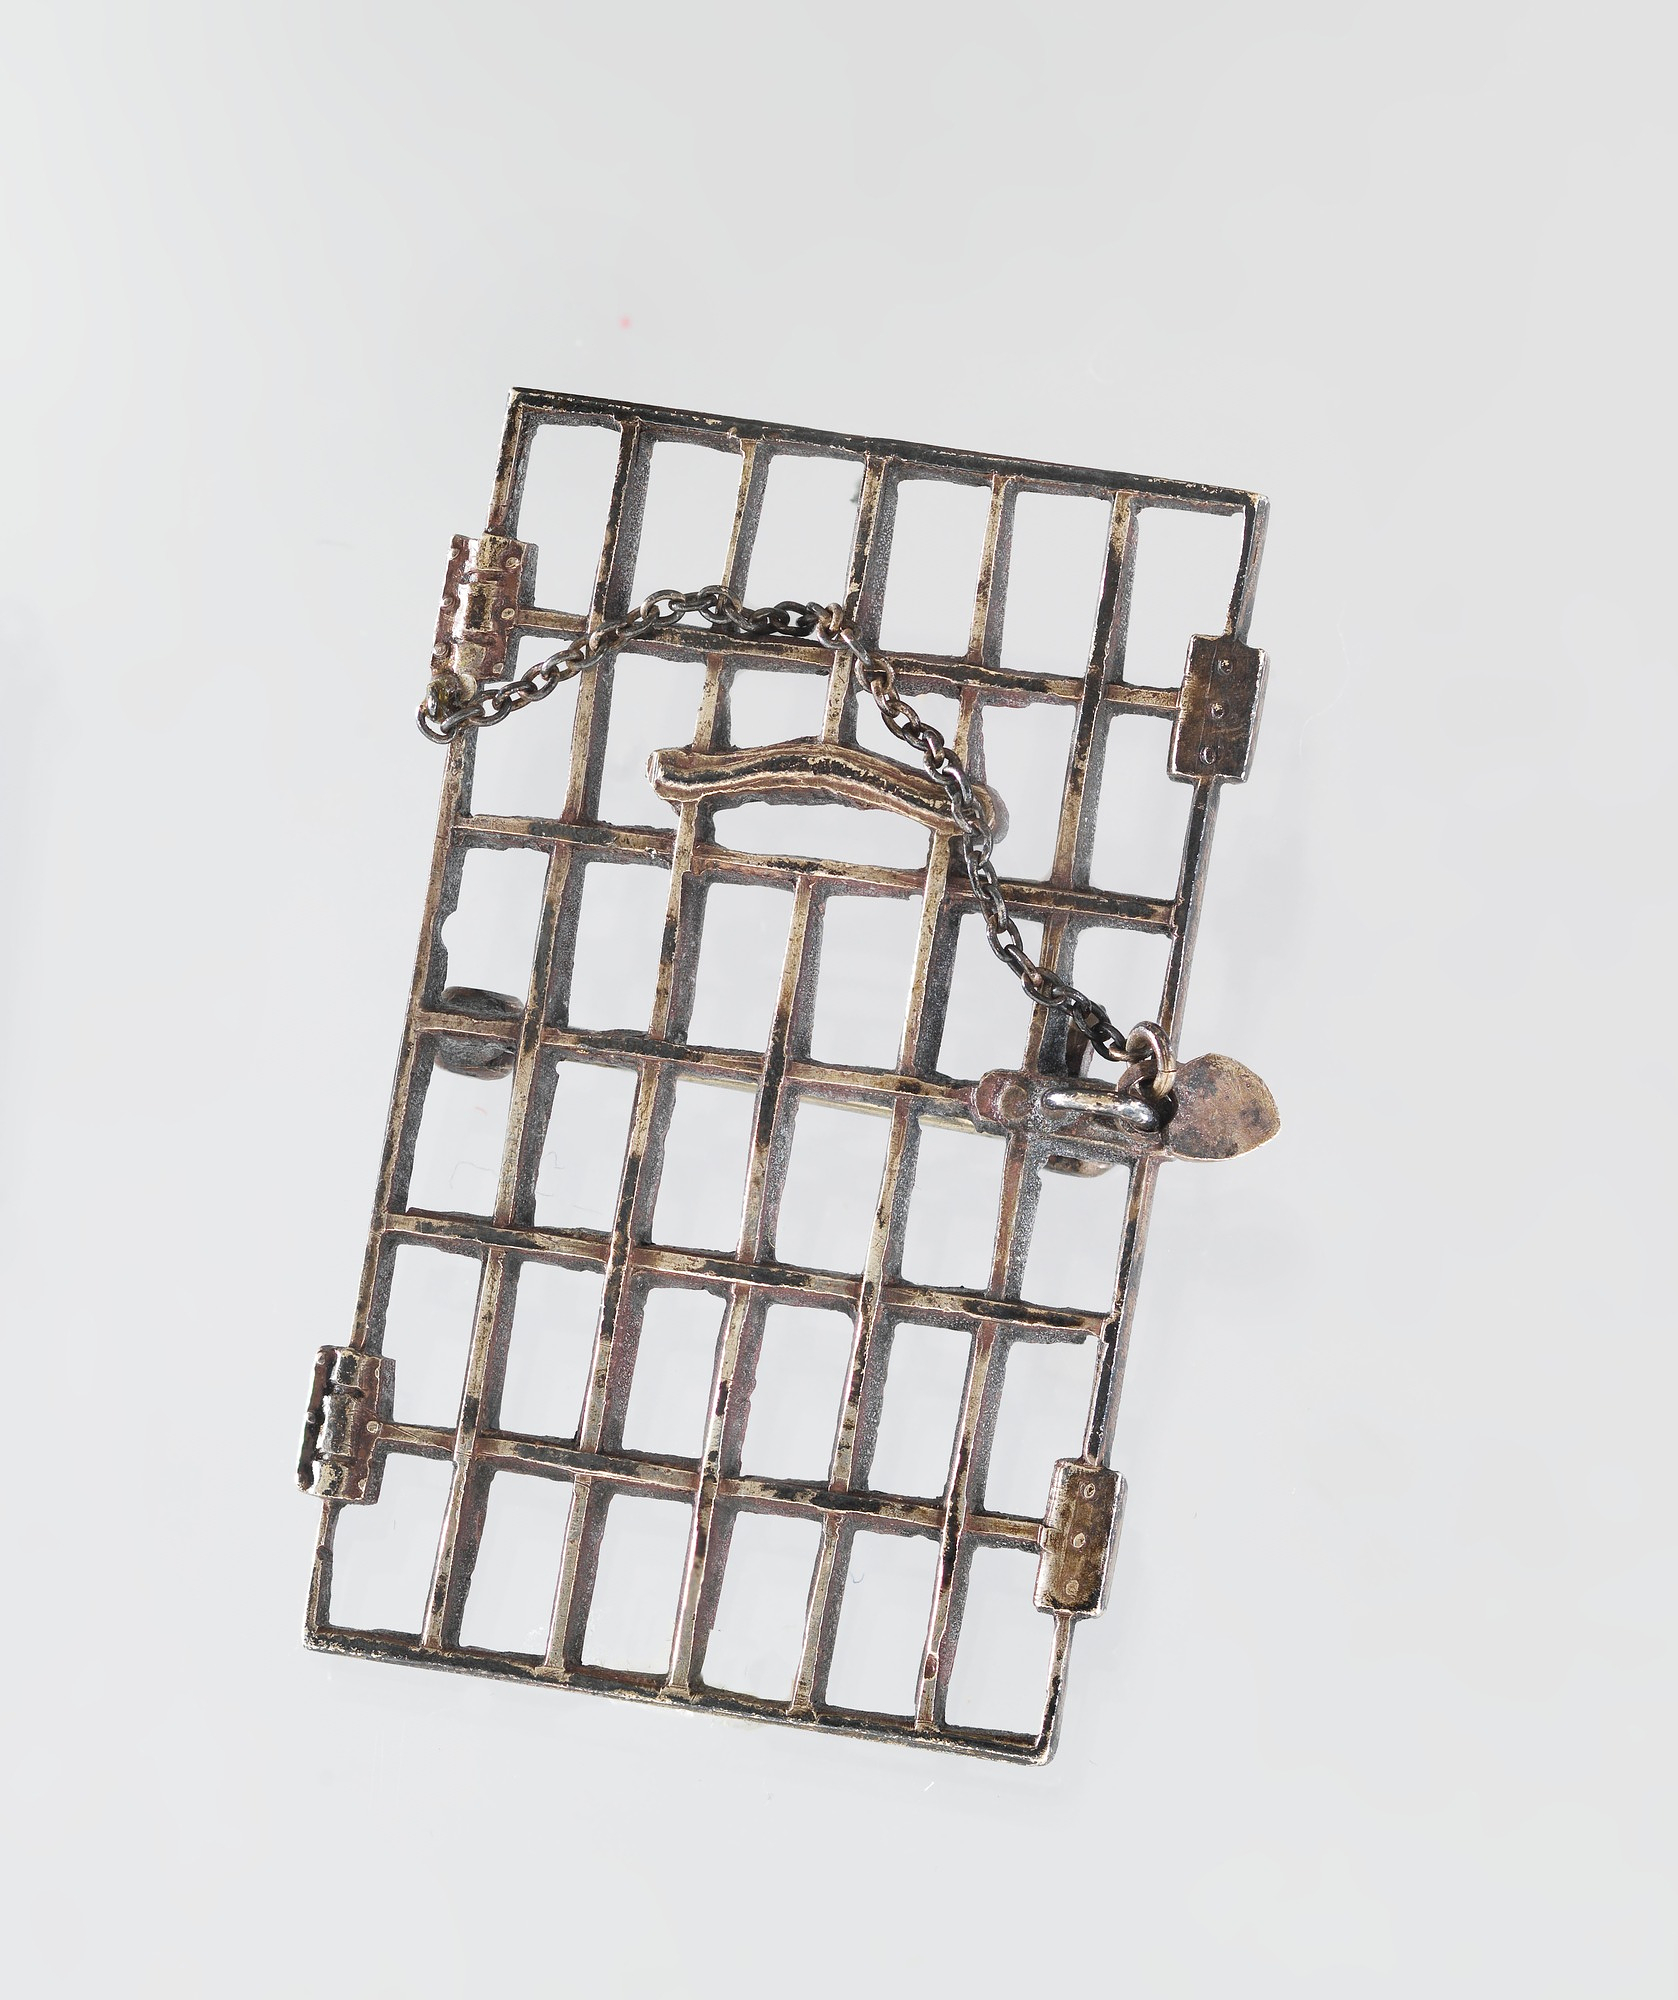 Jailed for Freedom Pin